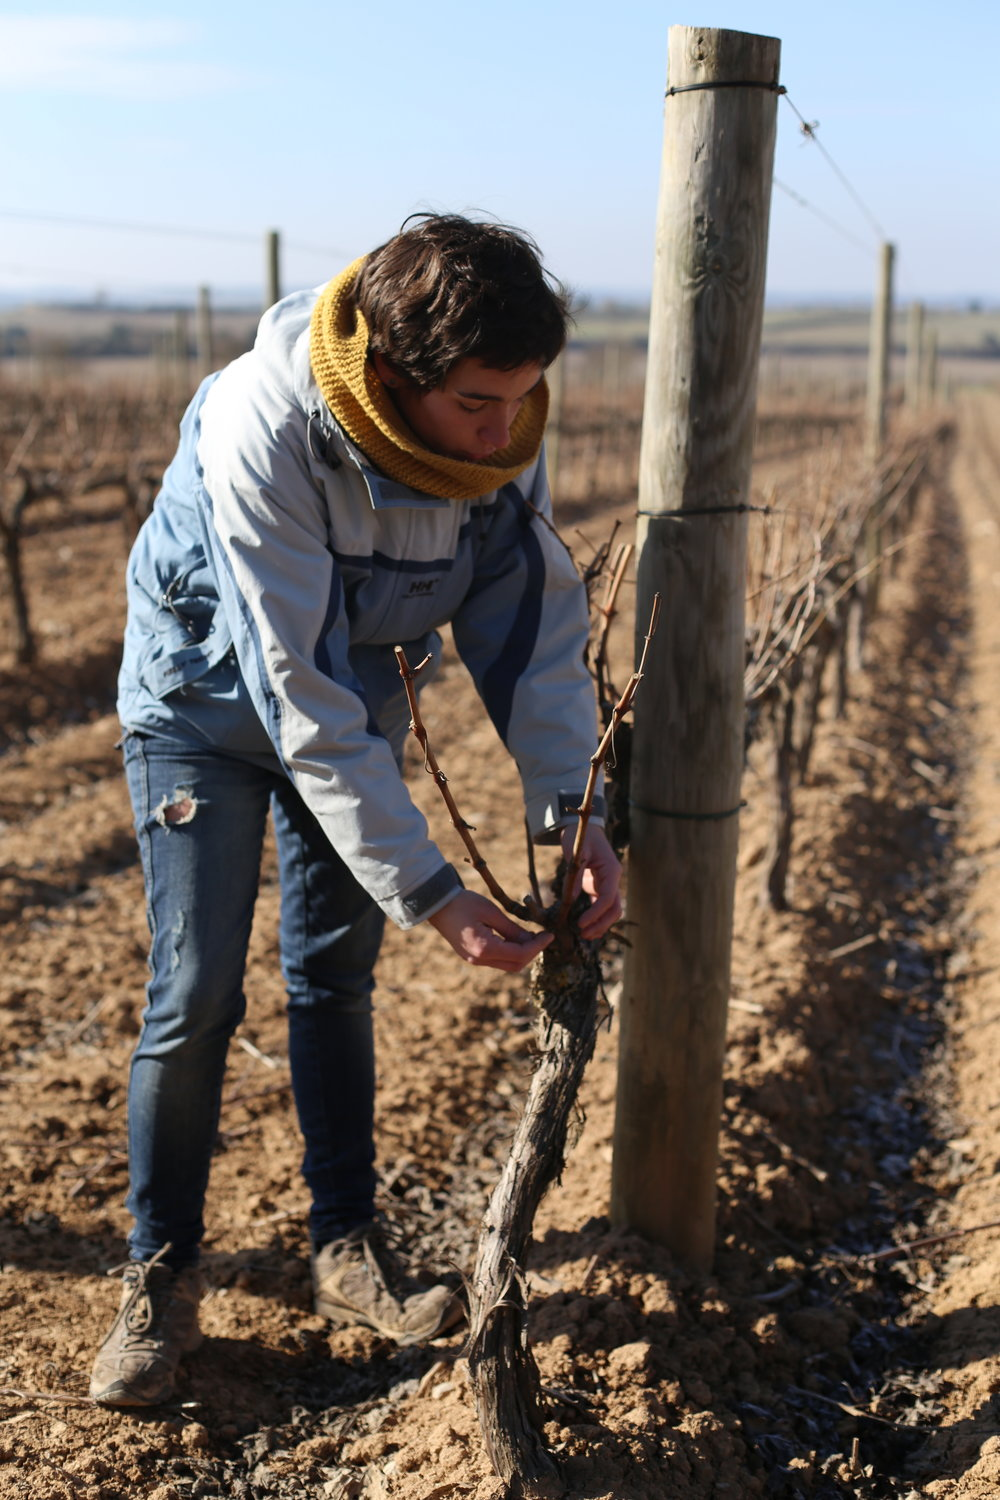 Eva from Comalats showing us the great care that goes in to cultivating her vines.